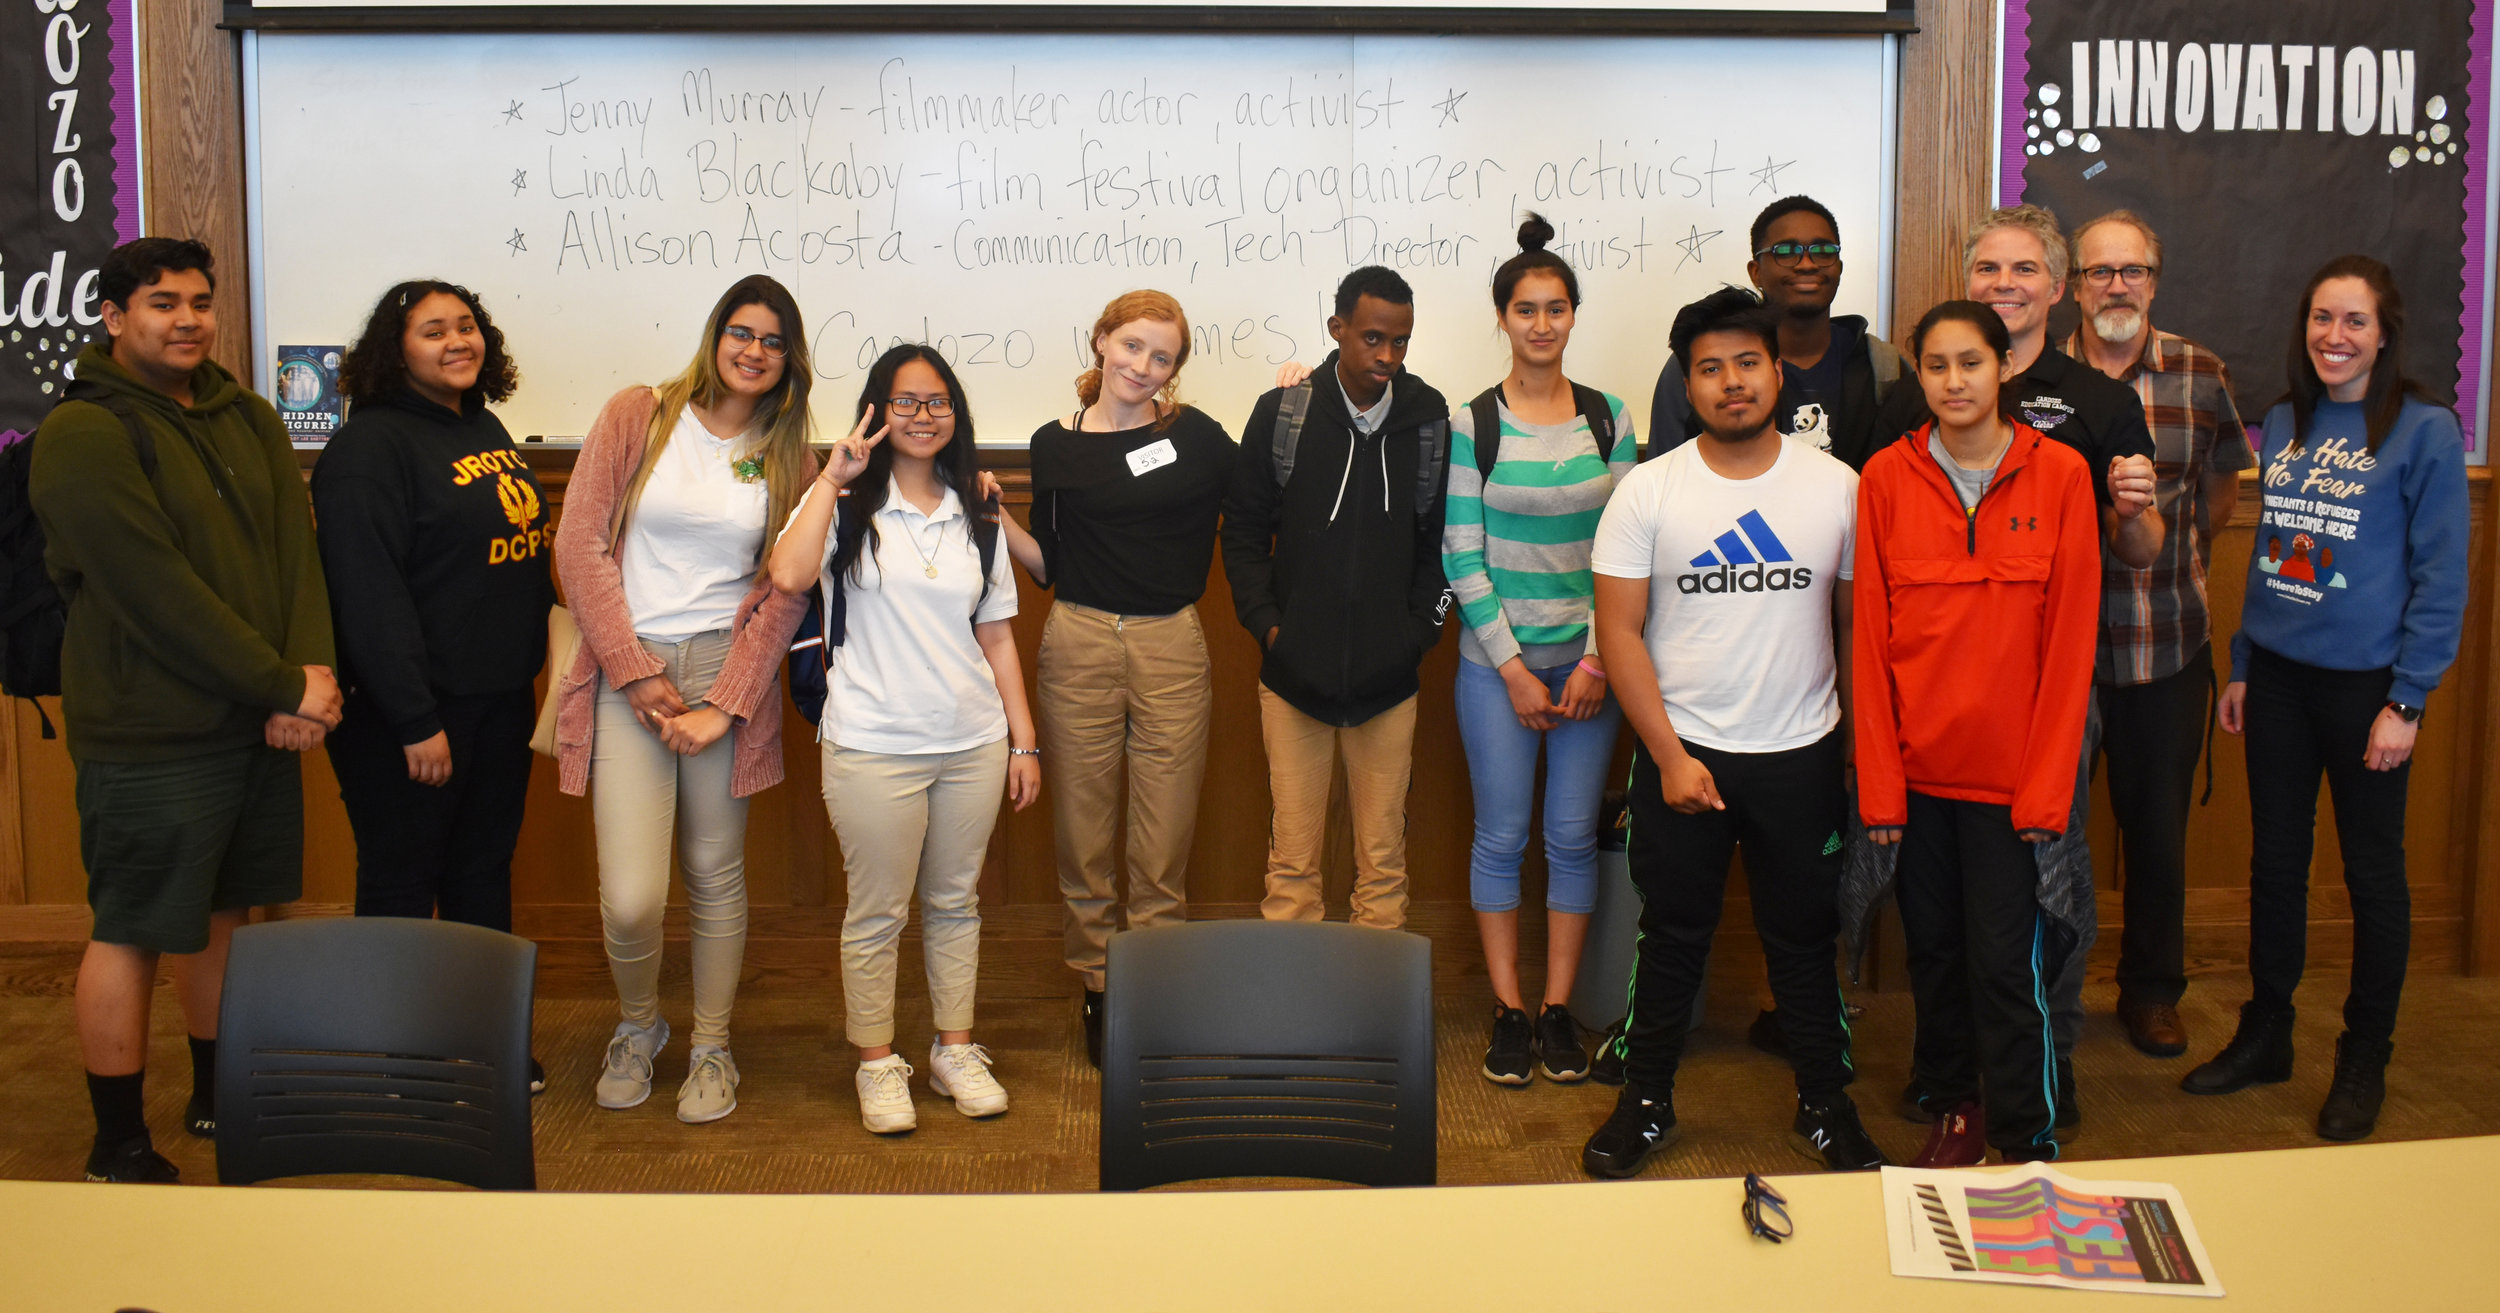 Filmmaker Jenny Murray visits Cardozo Education Campus (DCPS).  See more photos .